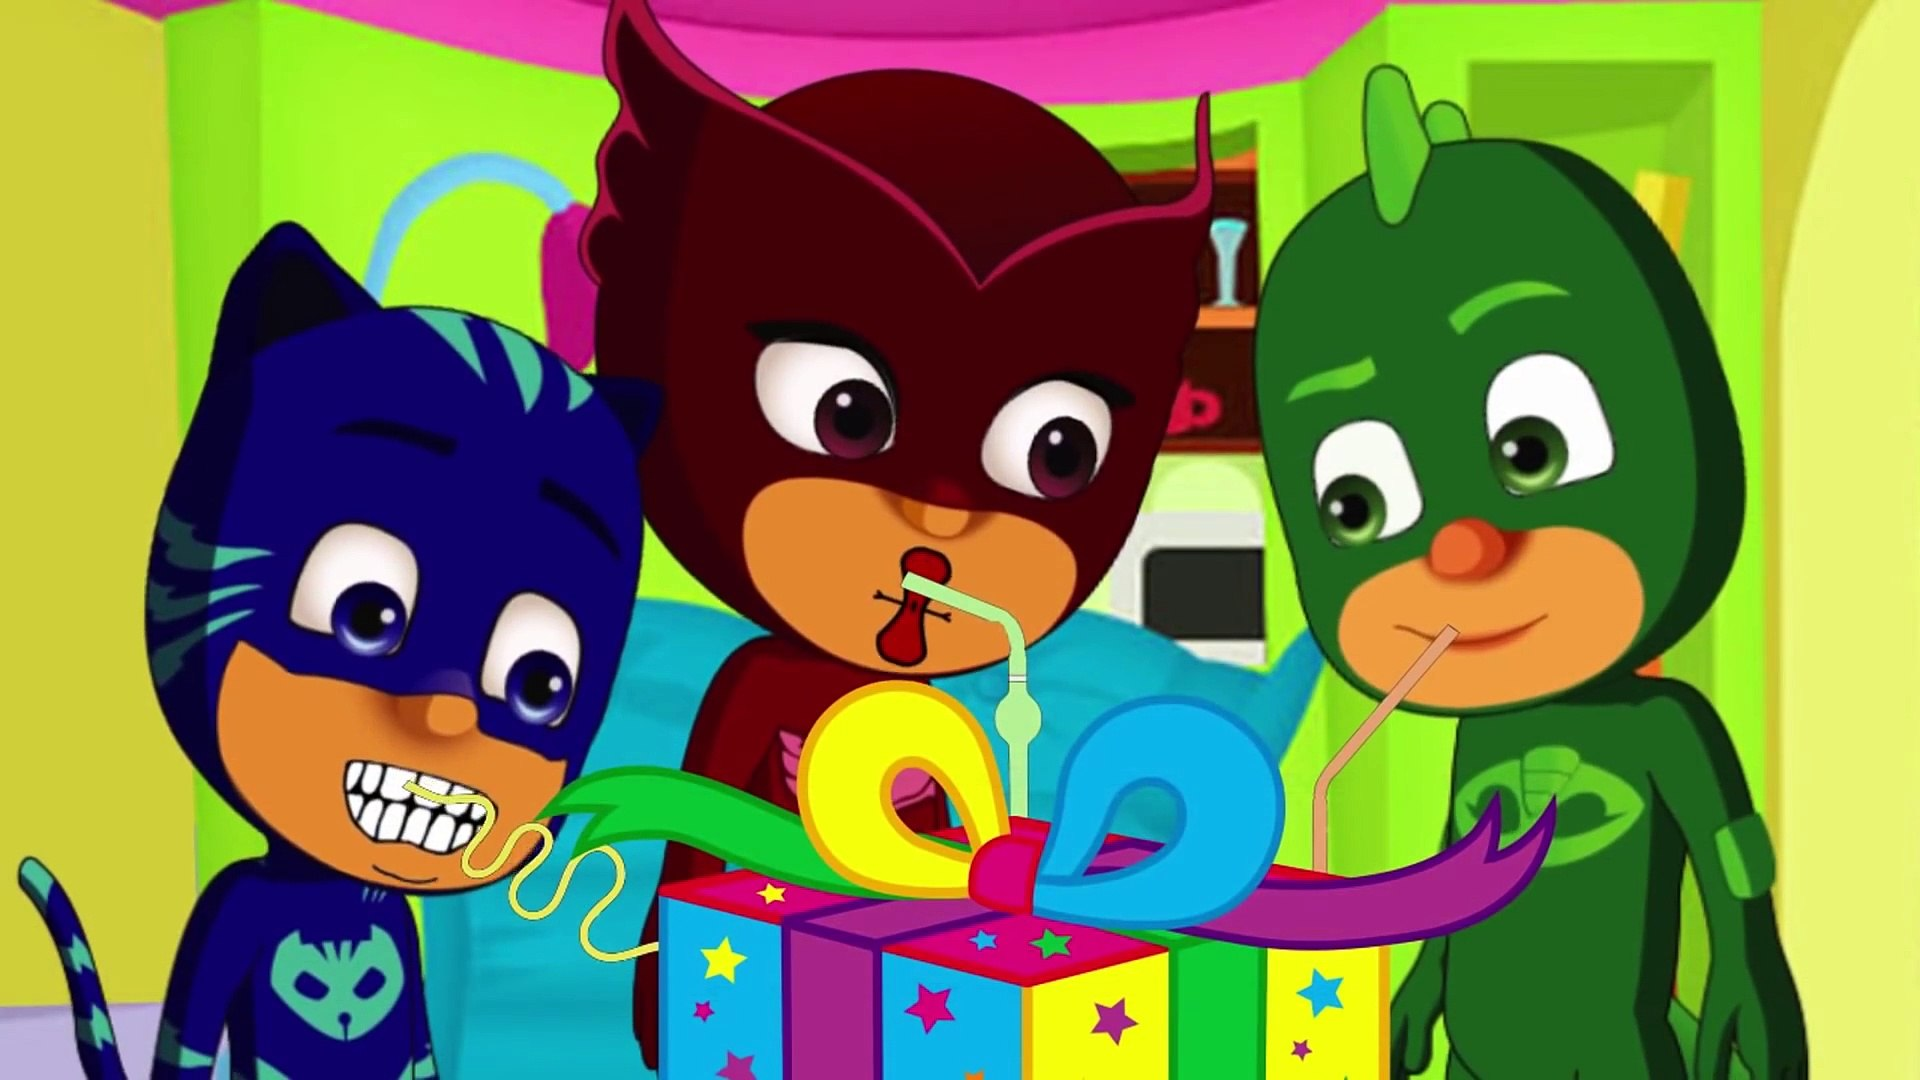 Movies Comedy & Entertainment Animation Kids Video Full HD #4